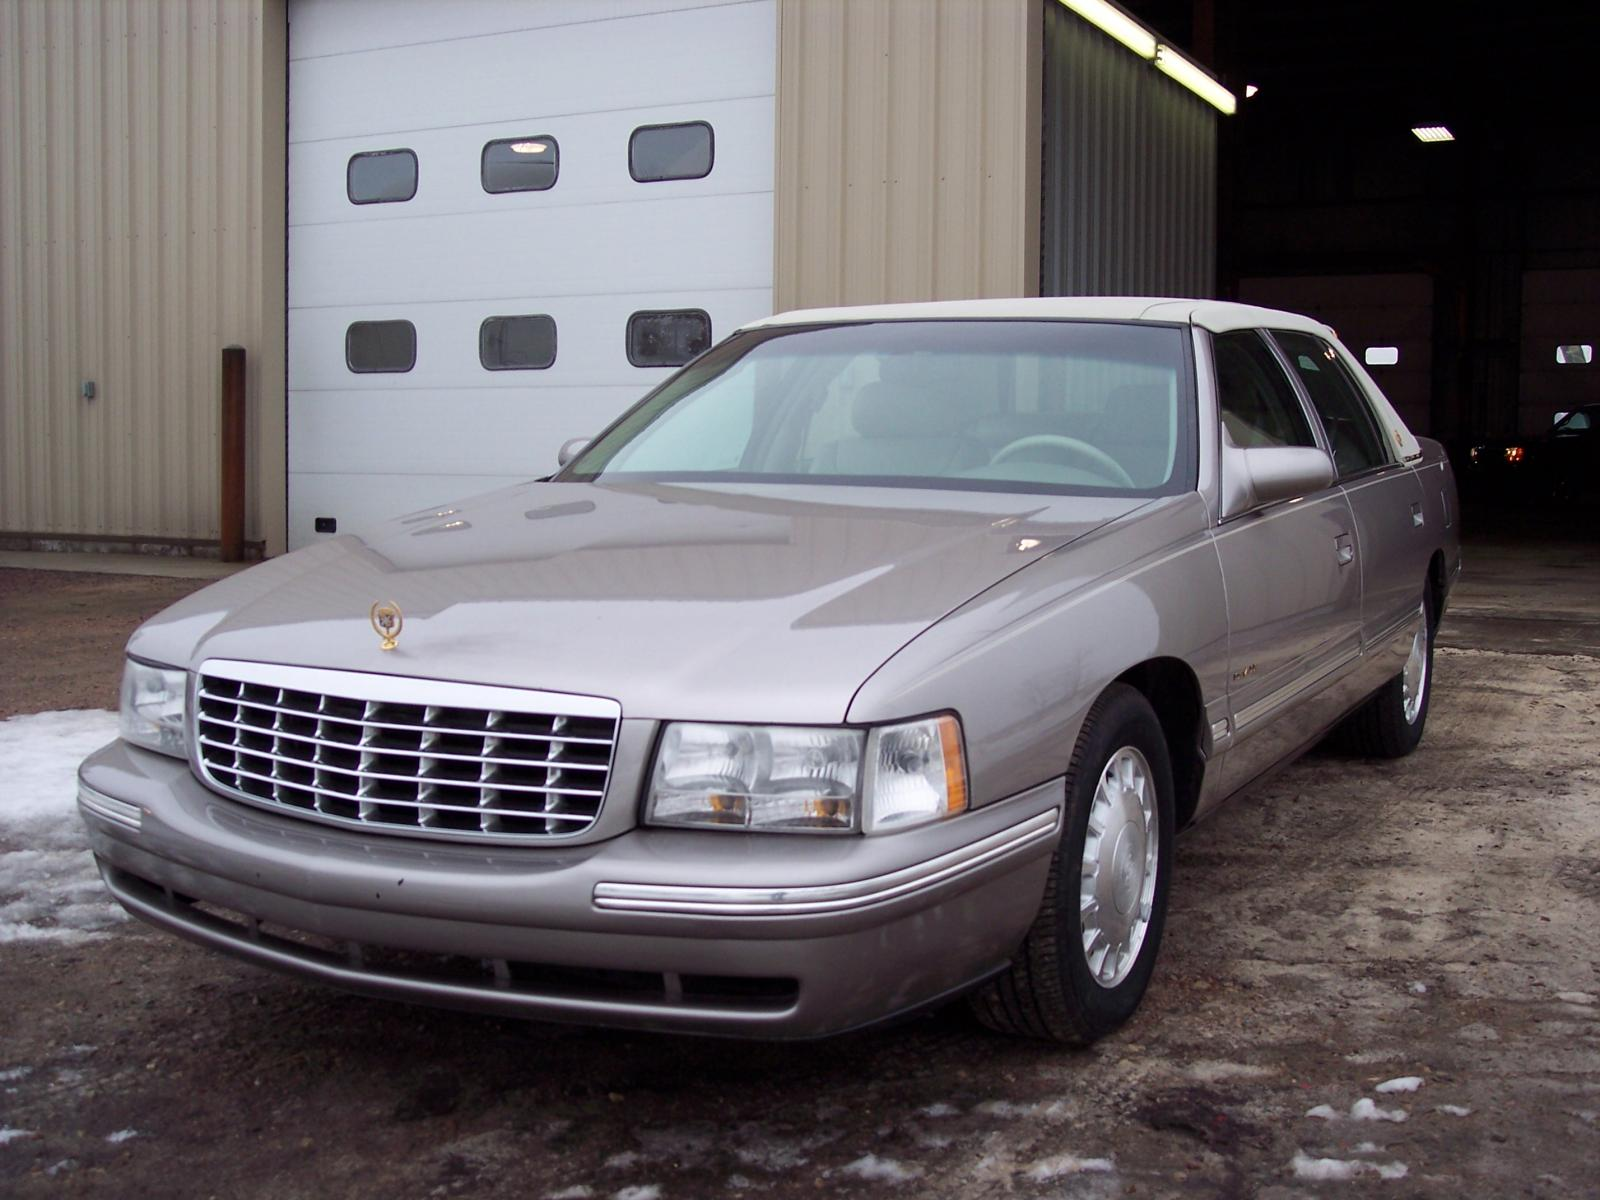 1999 cadillac deville information and photos zombiedrive. Cars Review. Best American Auto & Cars Review